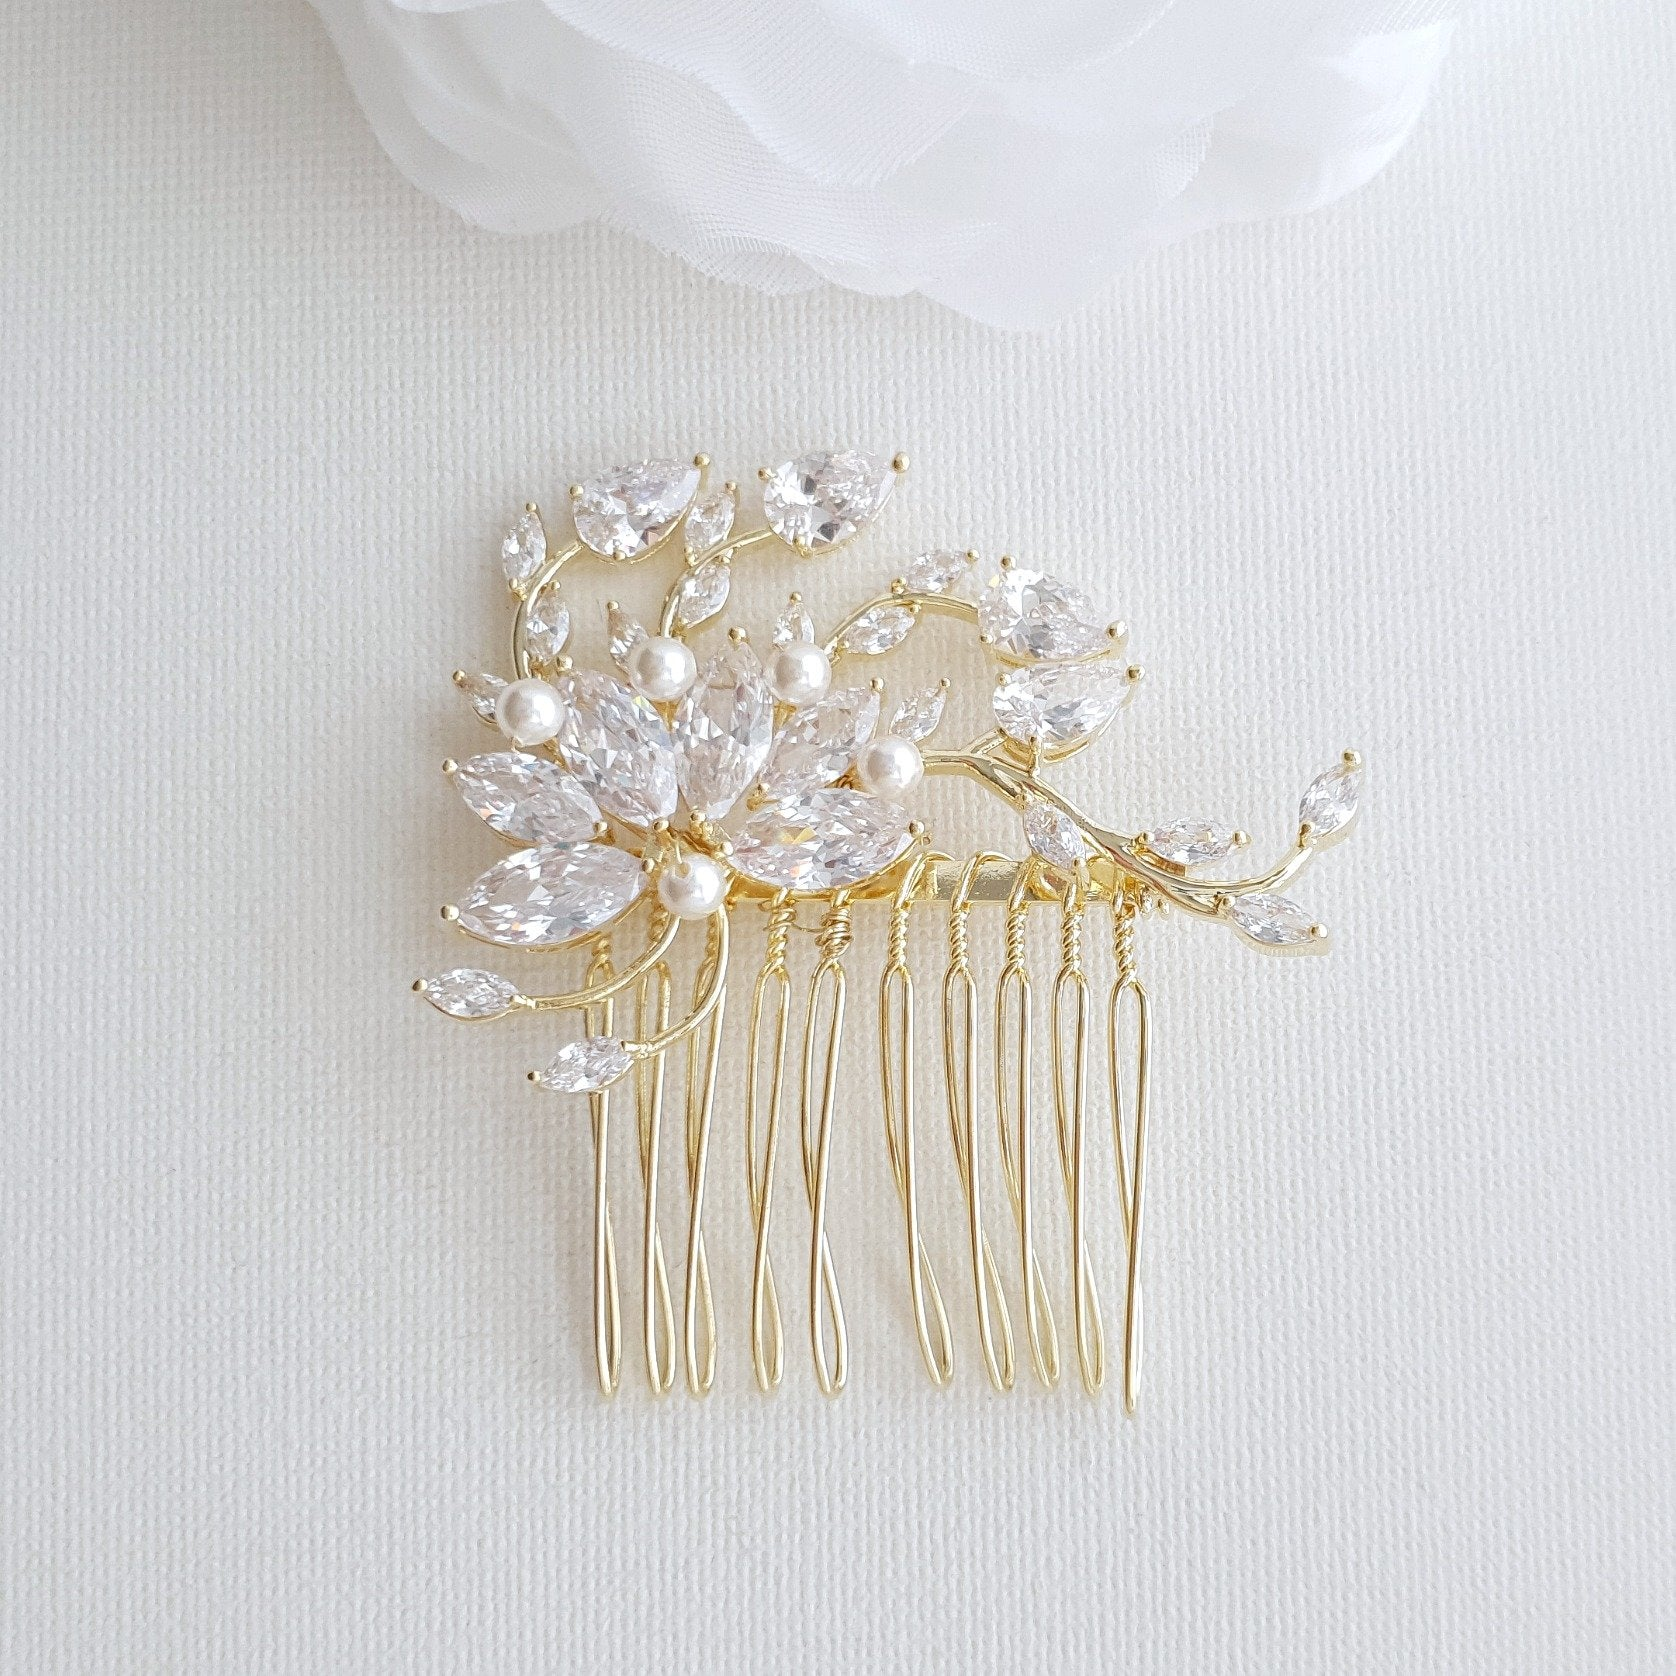 Petite Flower Bridal Hairpiece in Gold- Kika - PoetryDesigns